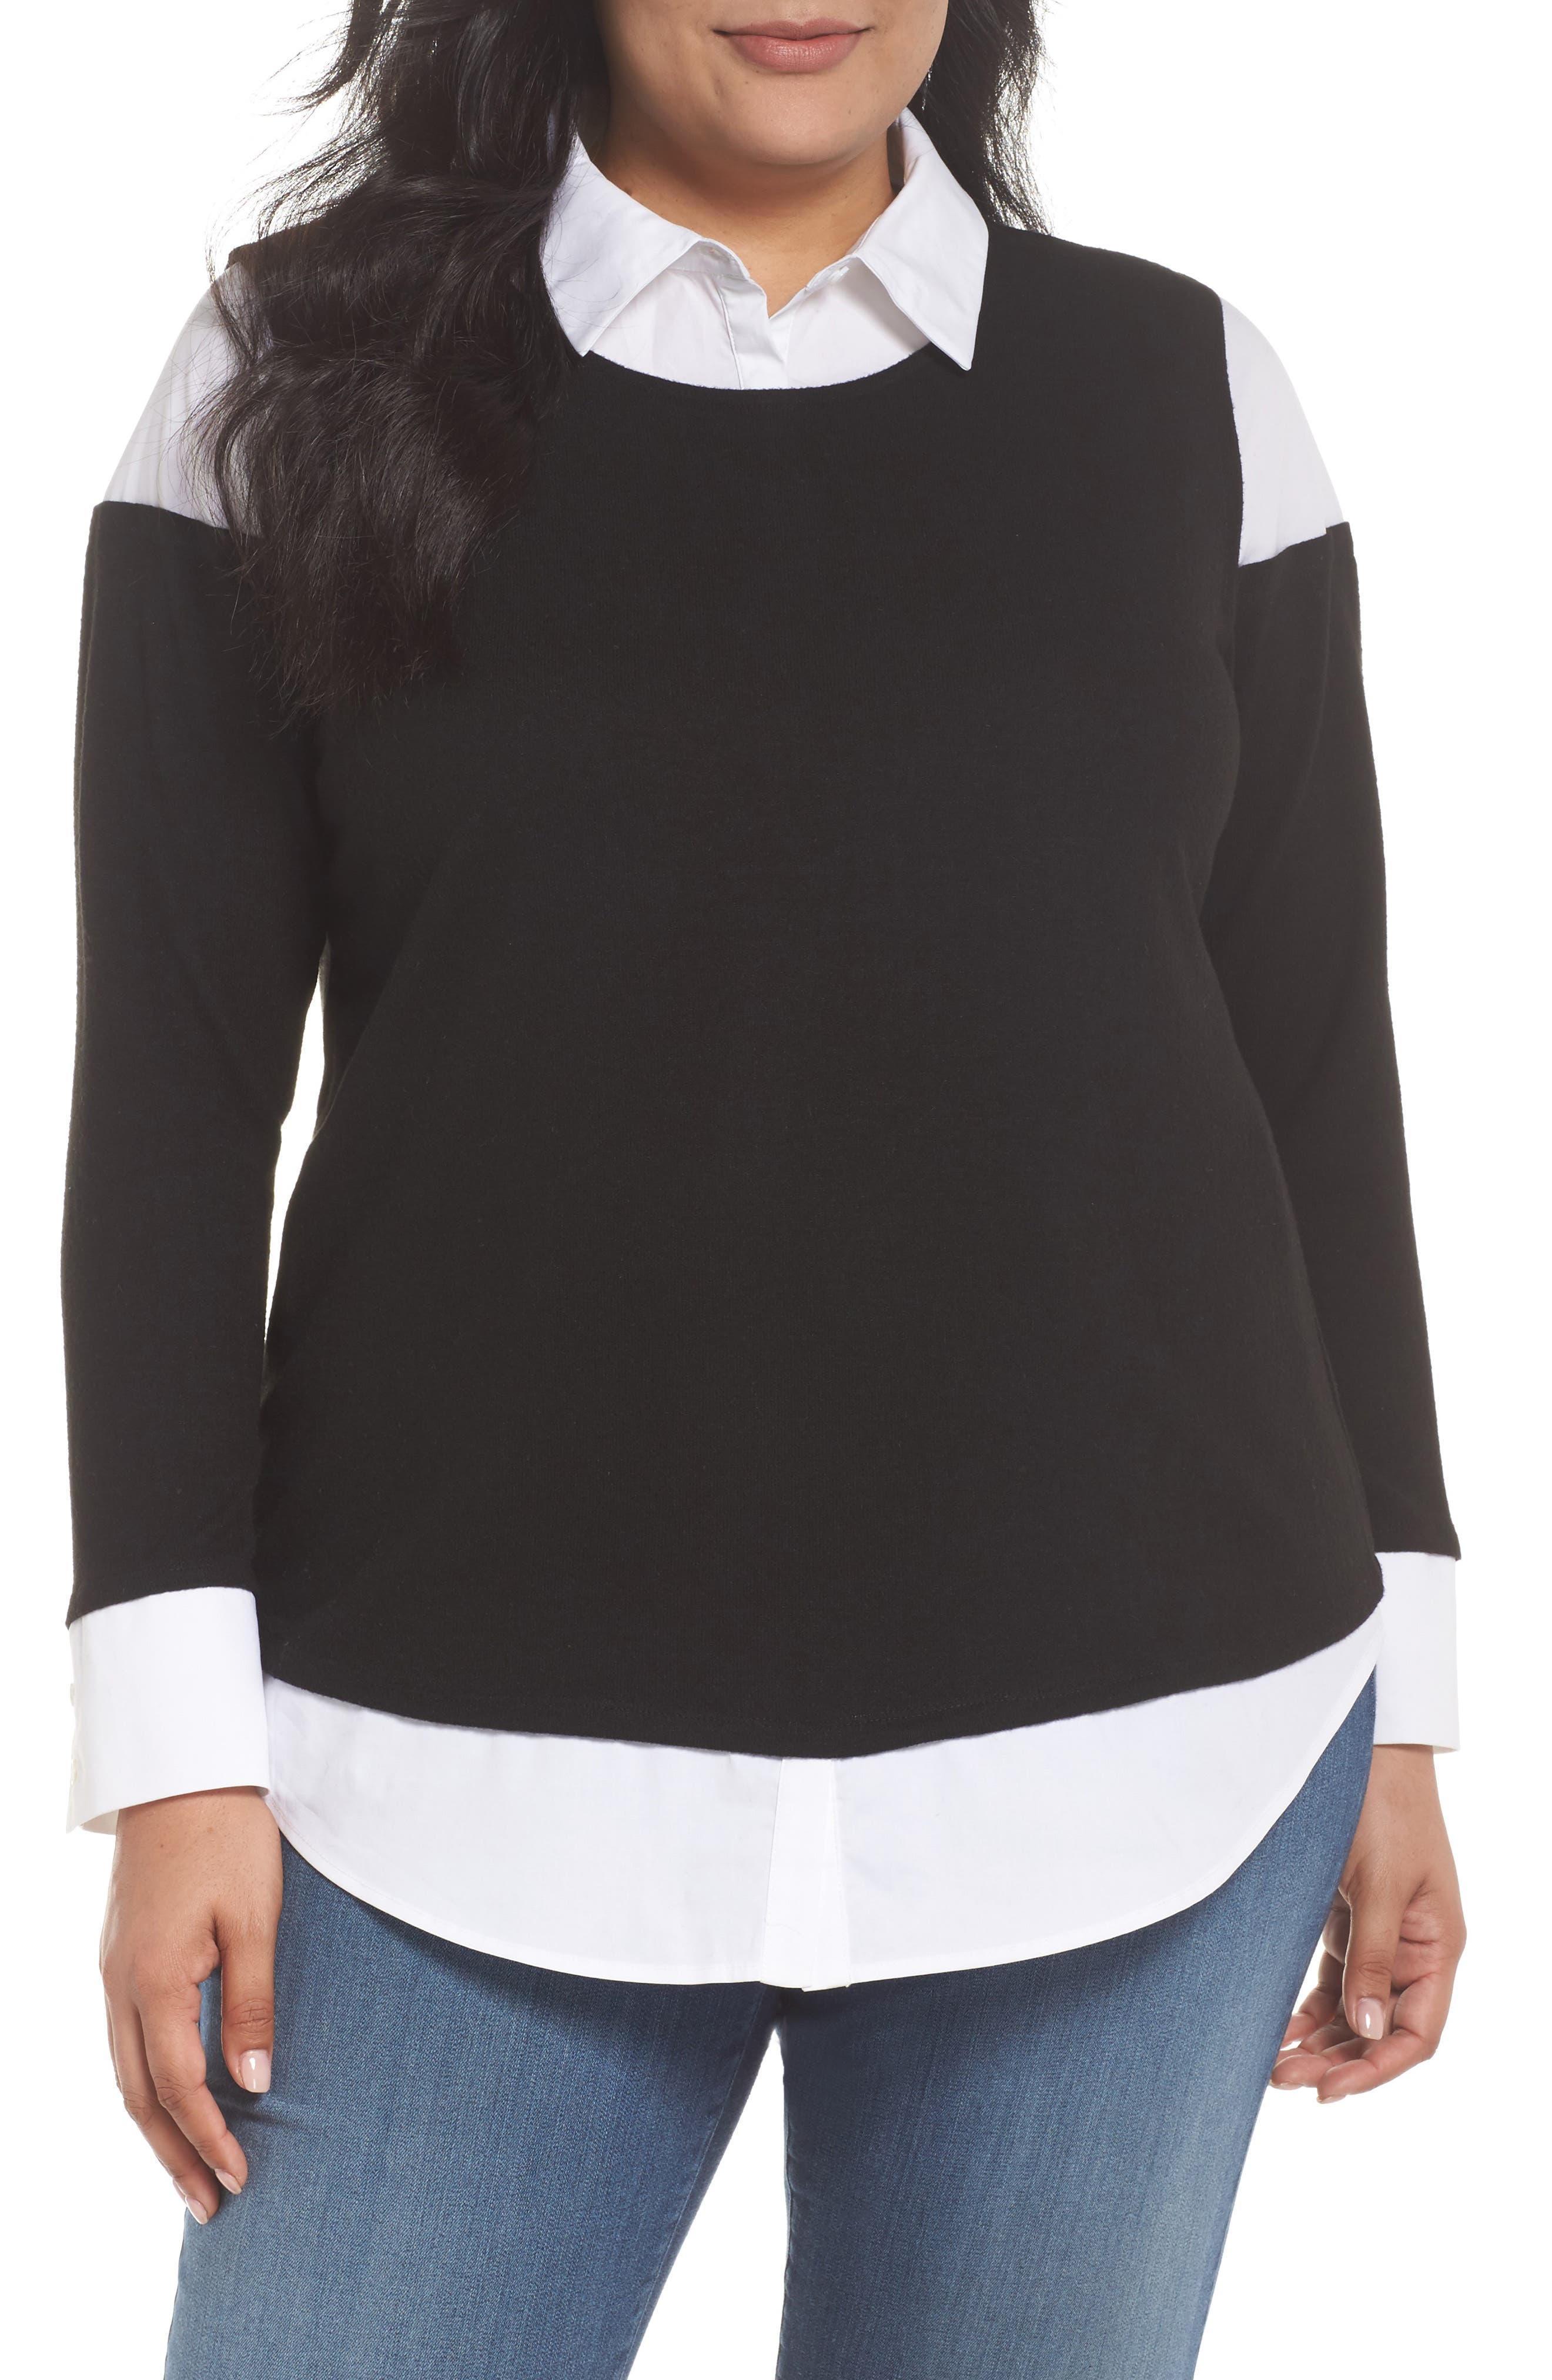 Main Image - Vince Camuto Mix Media Brushed Jersey Top (Plus Size)